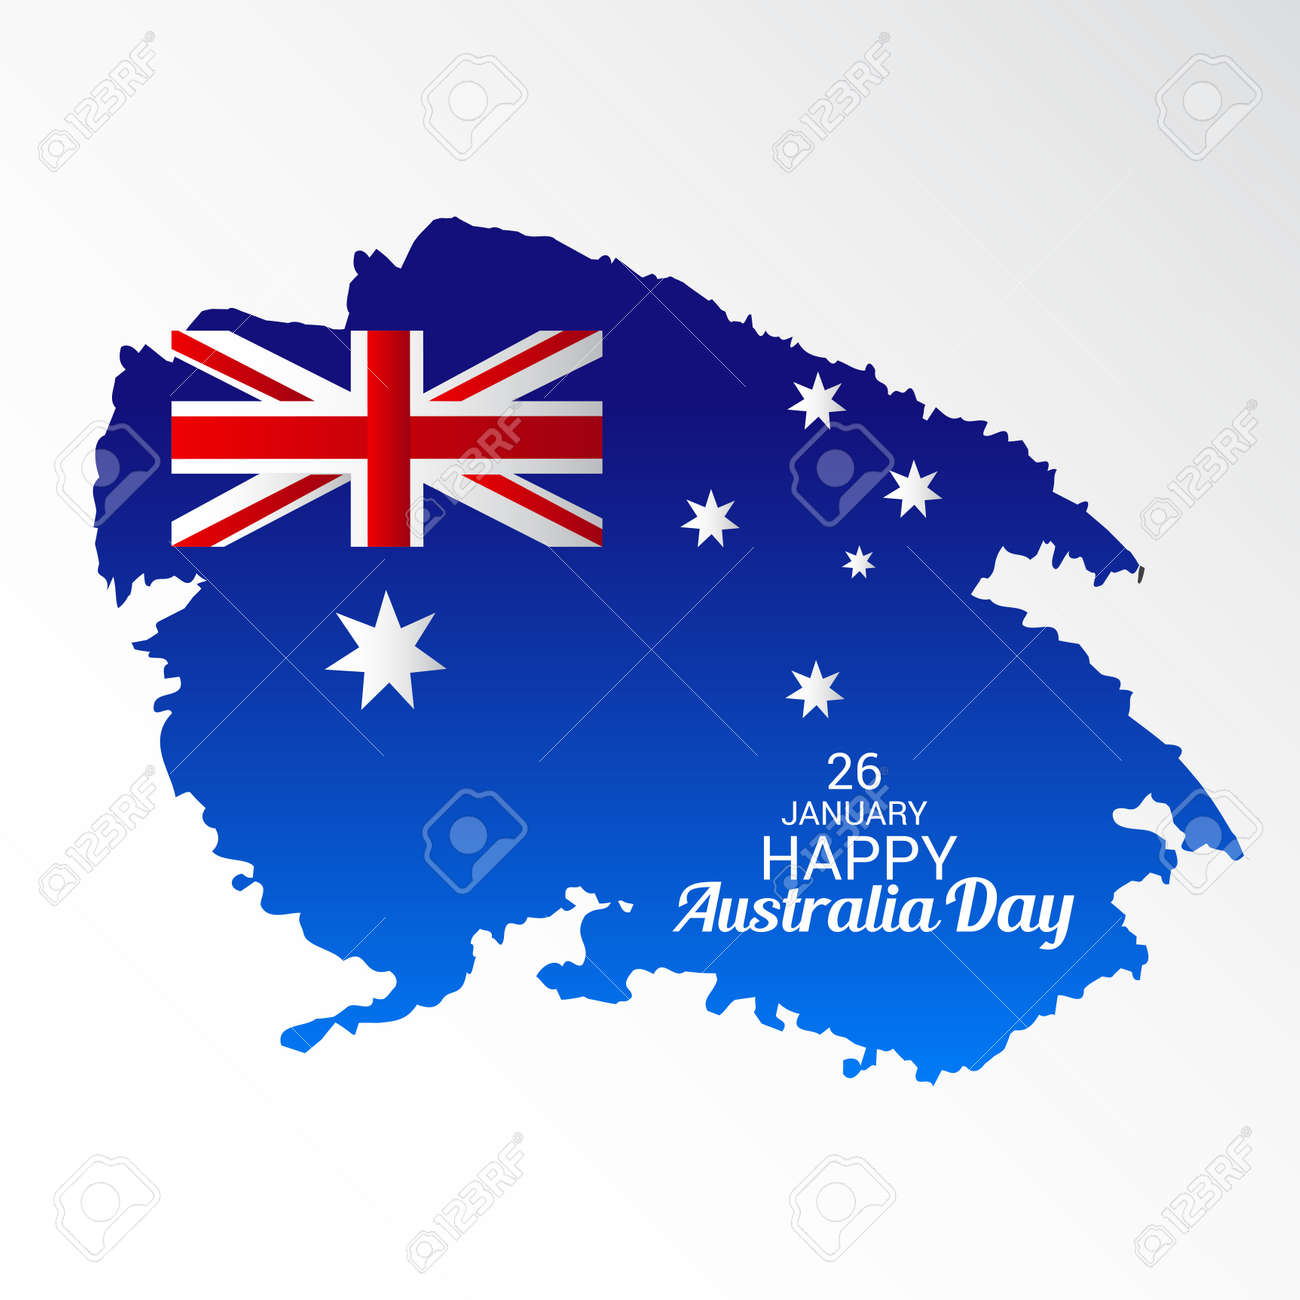 Happy australia day greeting card with australian flag design happy australia day greeting card with australian flag design stock vector 94132451 m4hsunfo